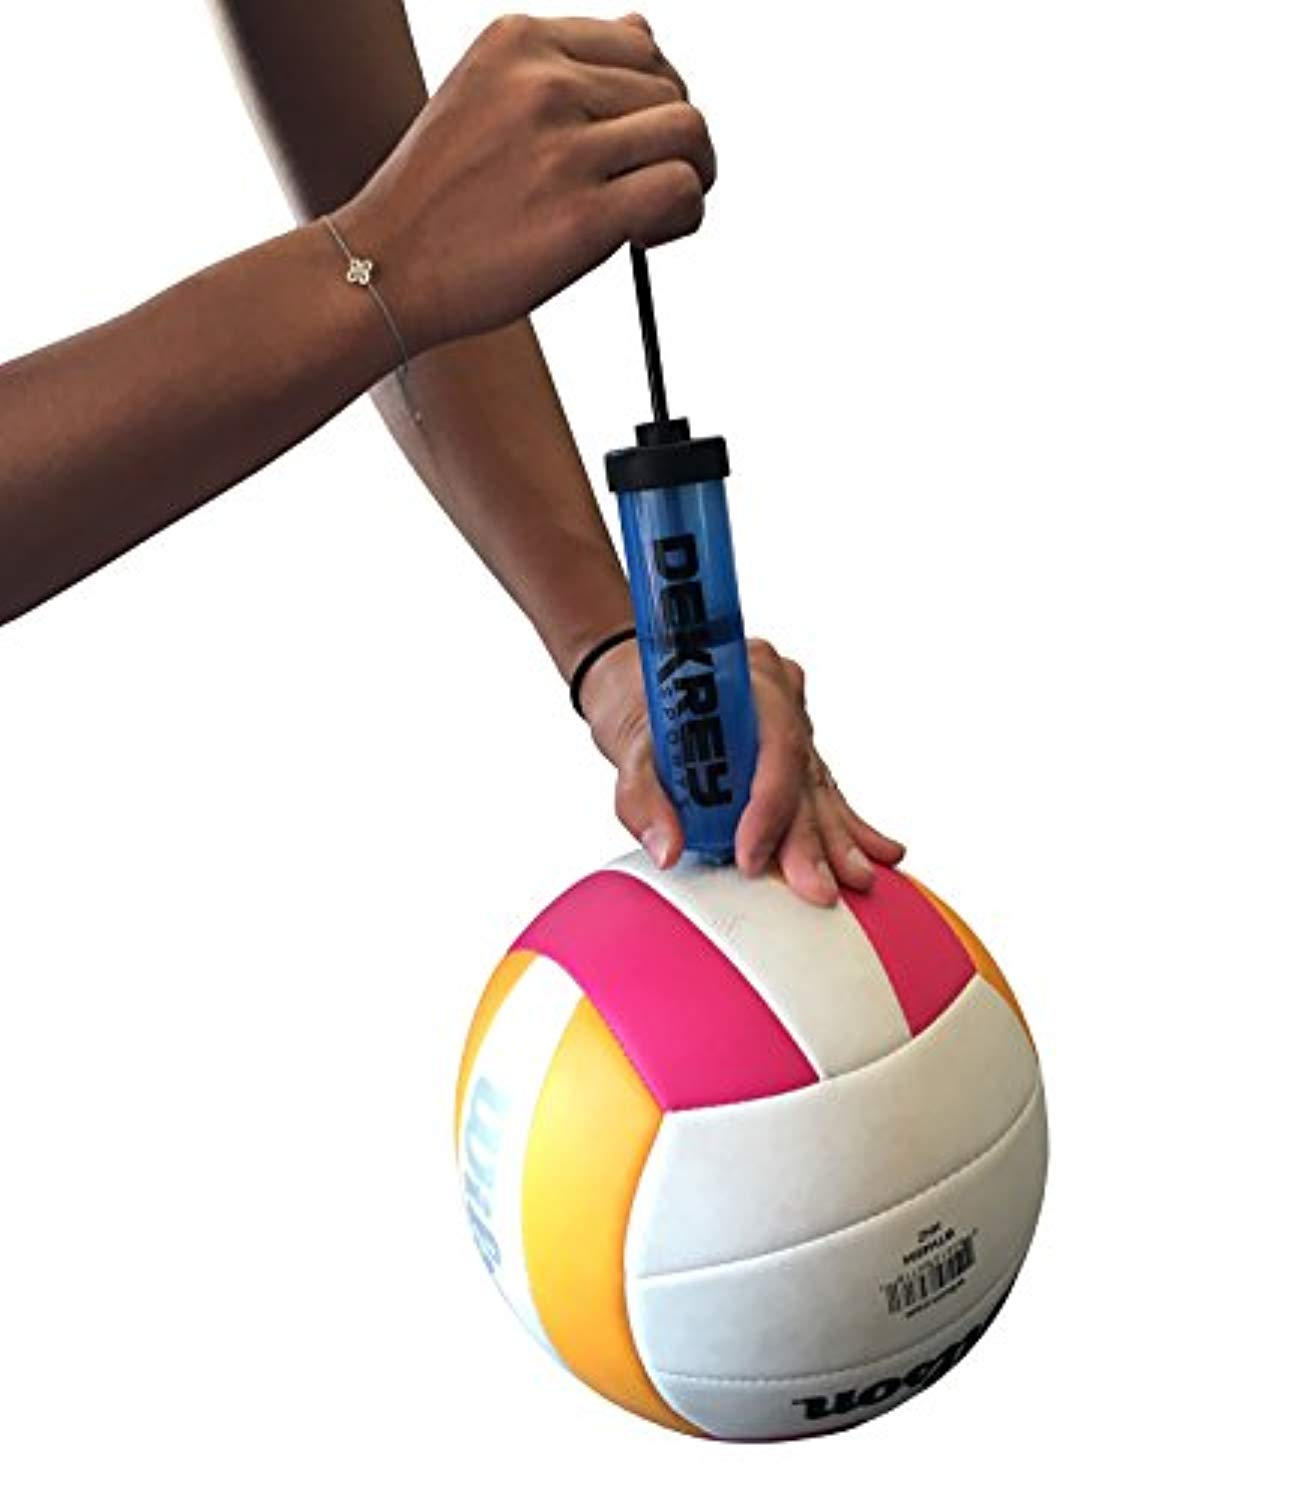 Sports 8-Inch Ball Pump for Any Sports Ball, Soccer Ball, Football, Volleyball, Basketball